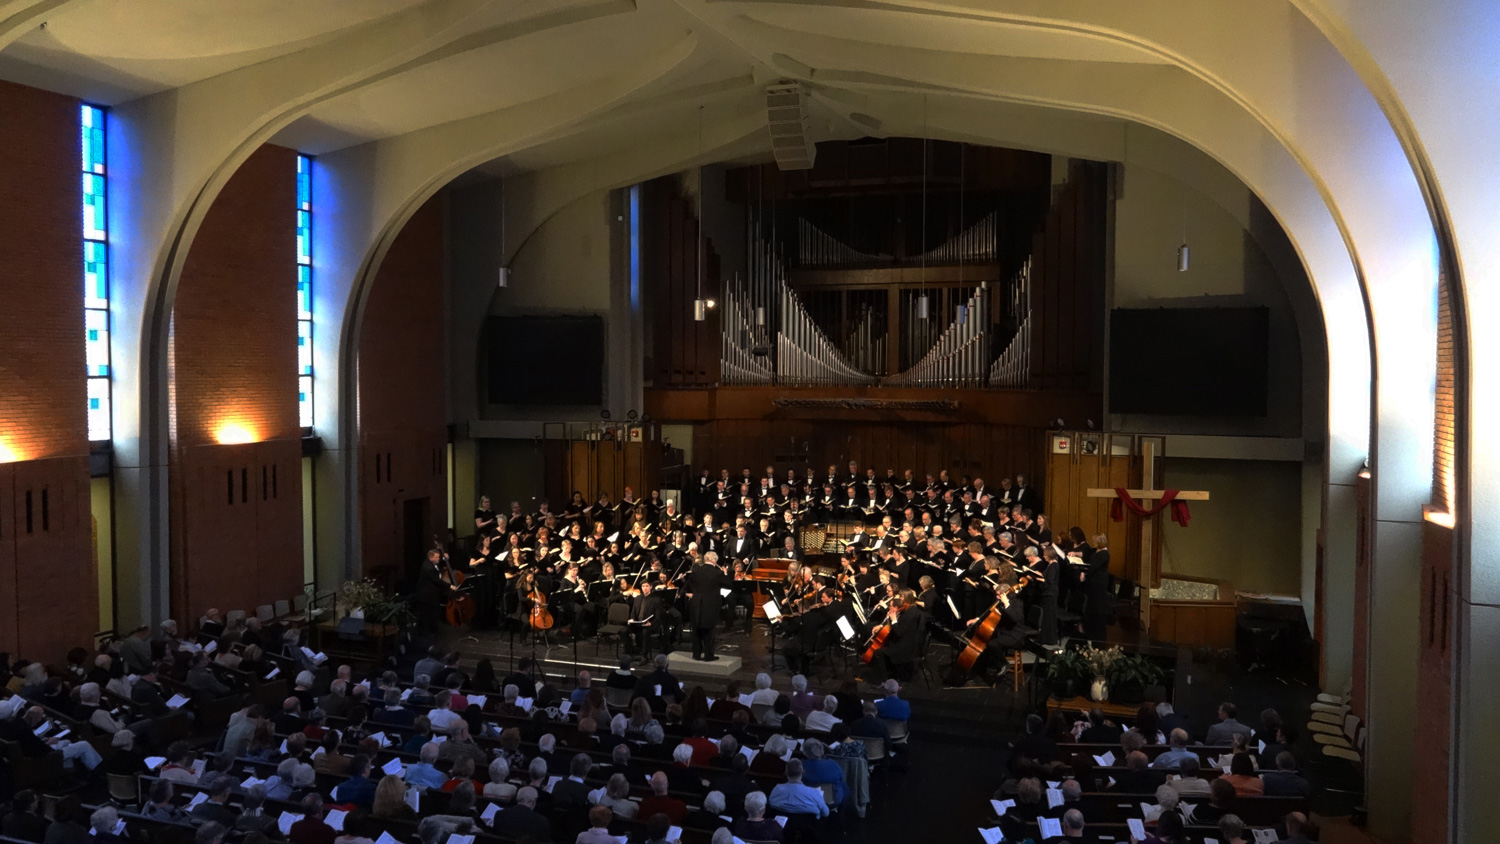 The Bach Society of Dayton brings awe-inspiring choral singing to Dayton, Ohio with choral and orchestral concerts that span seven centuries of music.